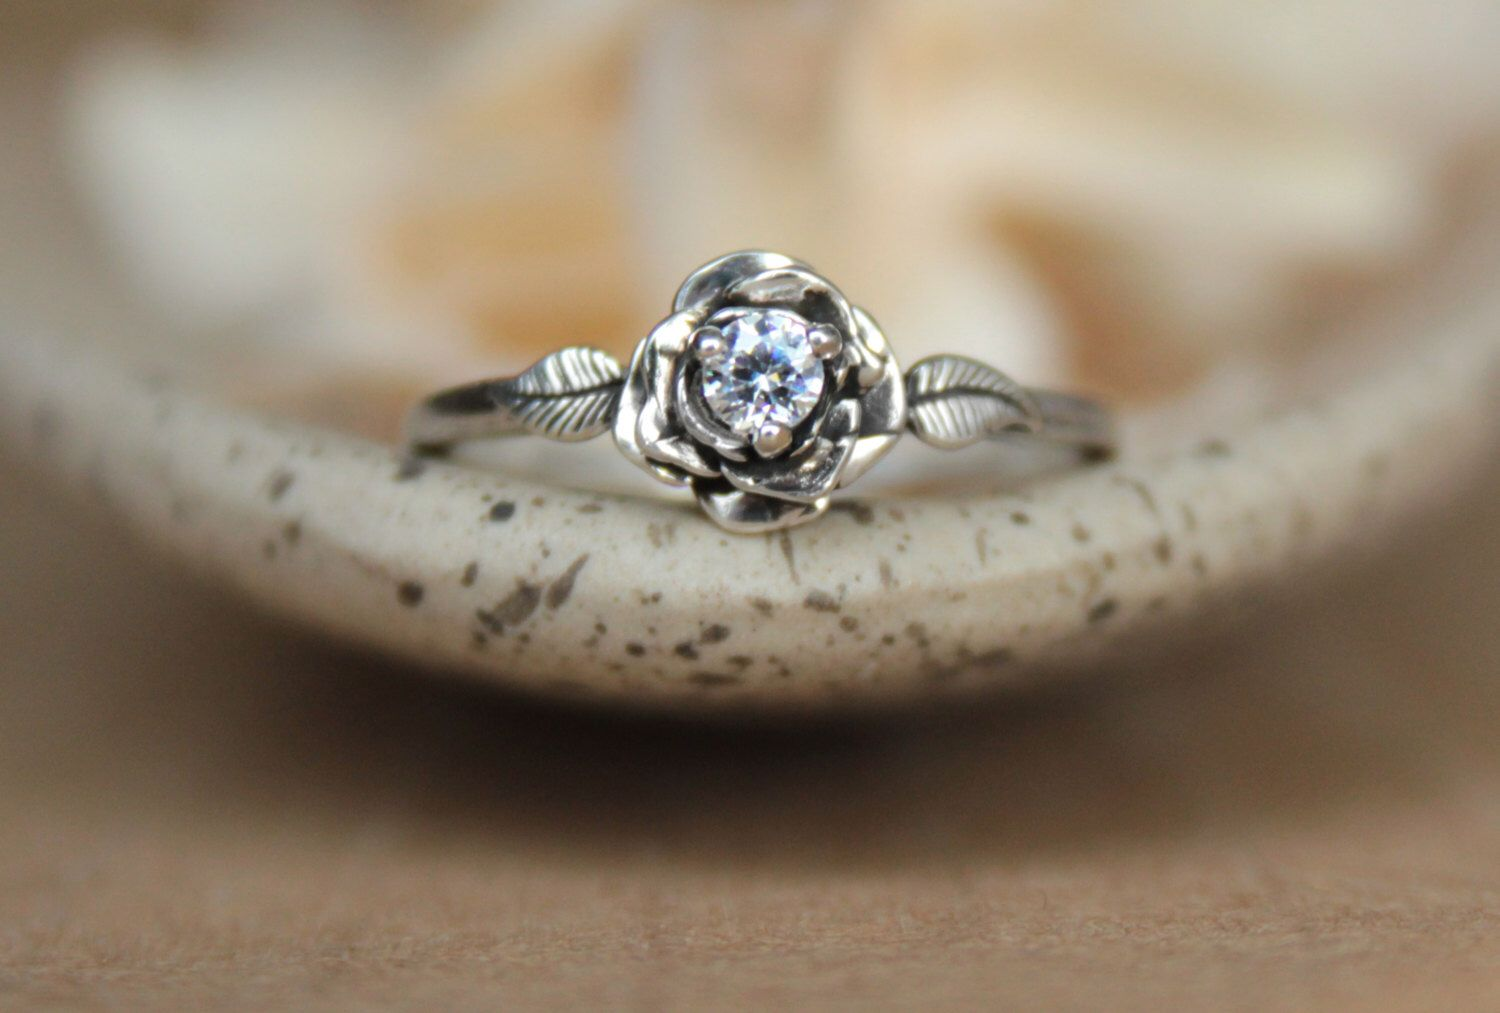 Delicate Rose Engagement Ring with White Sapphire in Sterling - Silver Unique Rose Diamond Alternative Promise Ring, Commitment Ring by moonkistdesigns on Etsy https://www.etsy.com/listing/233012240/delicate-rose-engagement-ring-with-white